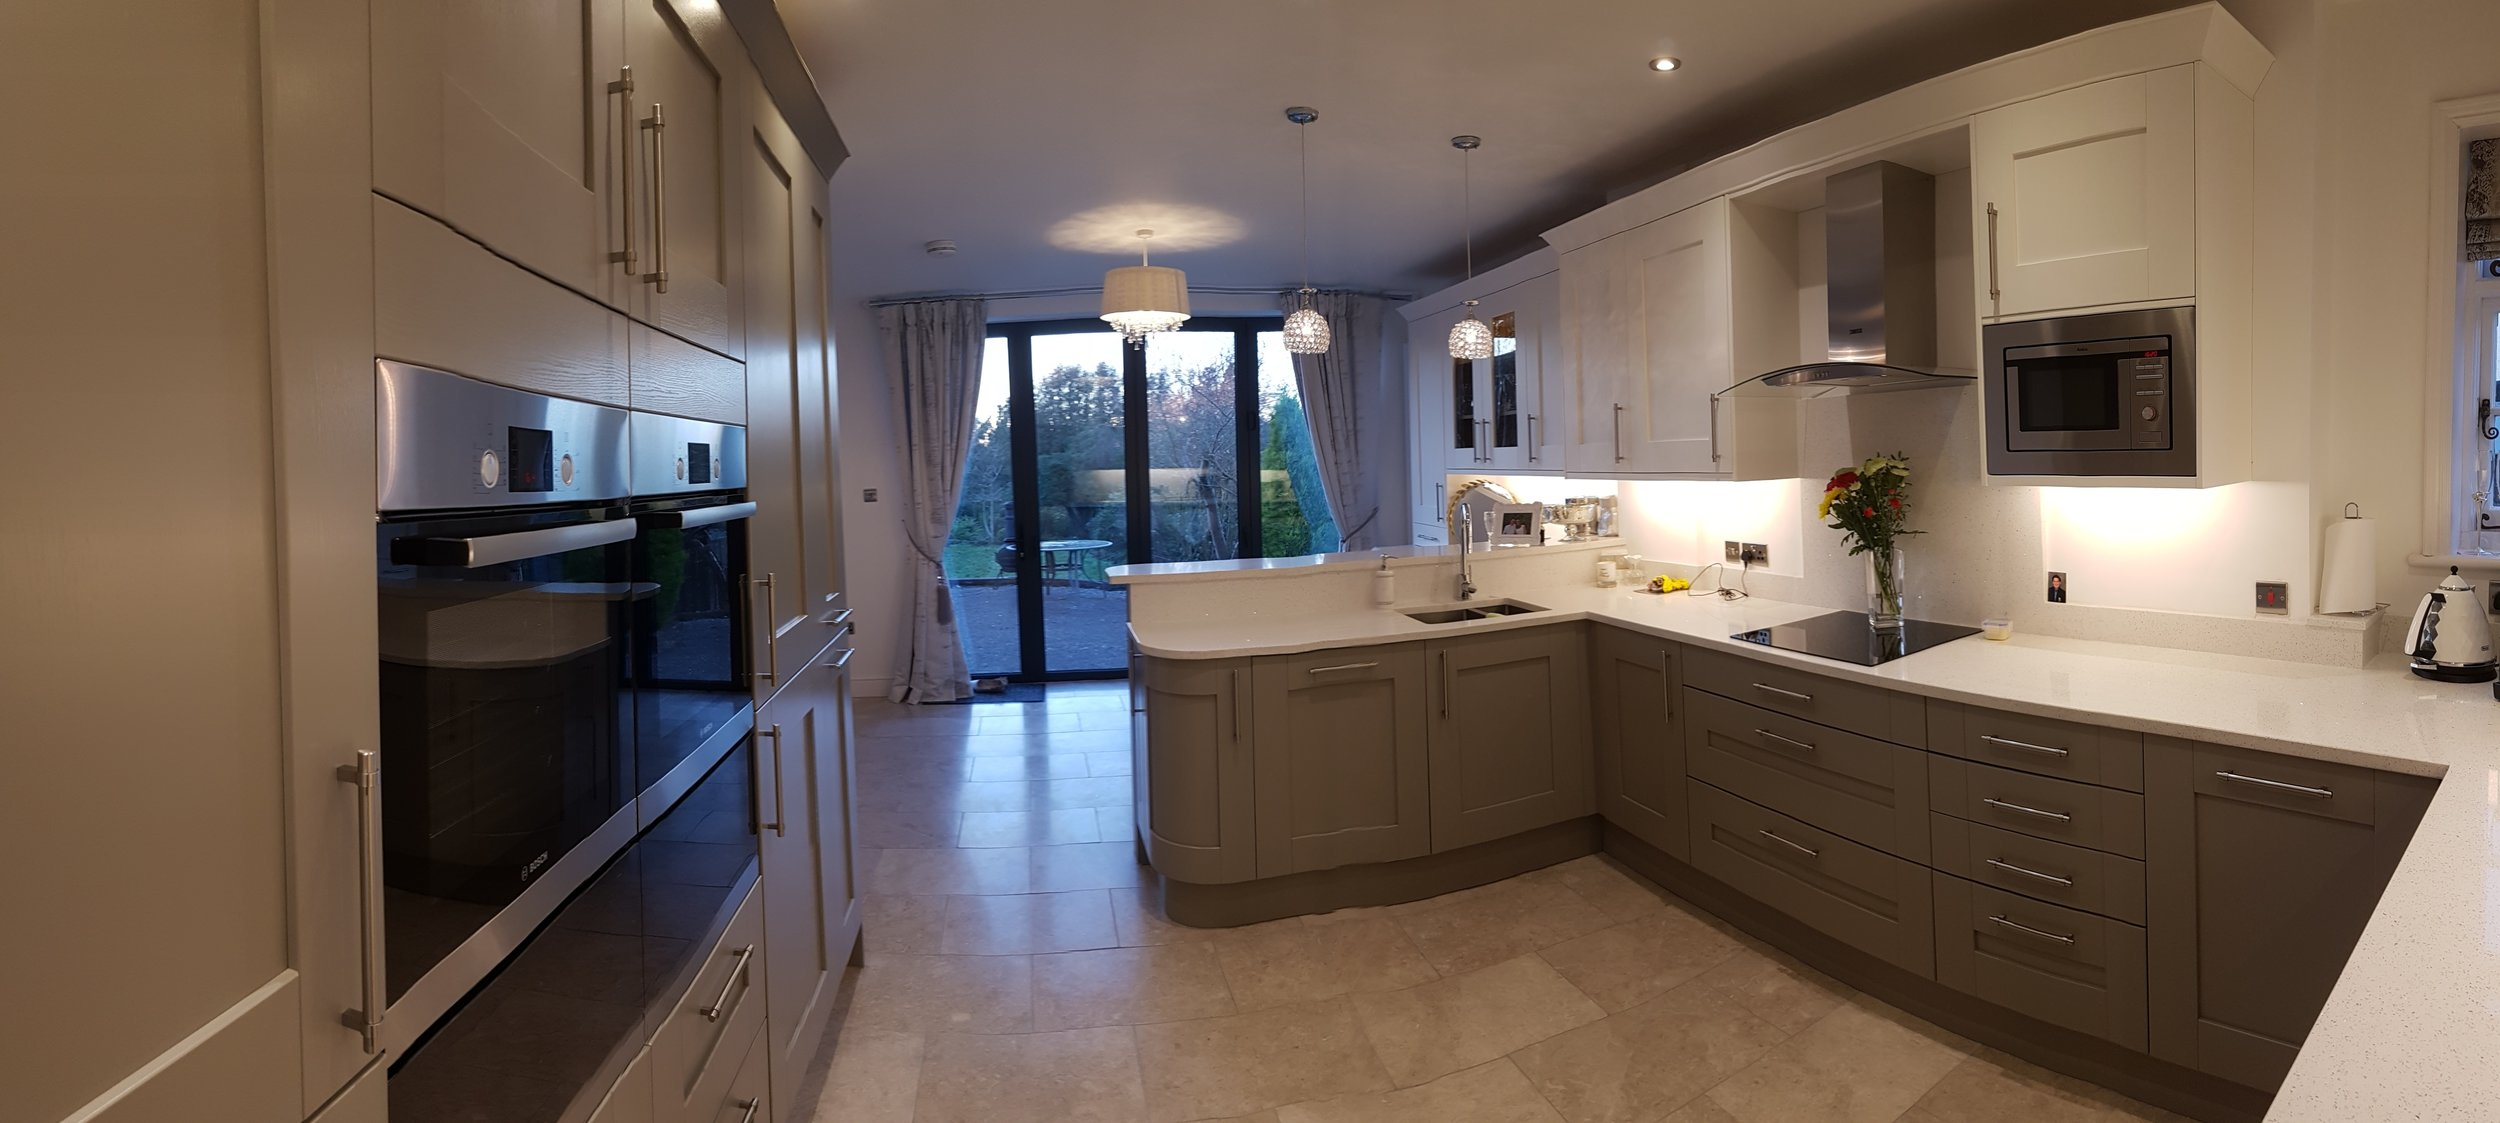 Classic Shaker Kitchen - Gloucestershire